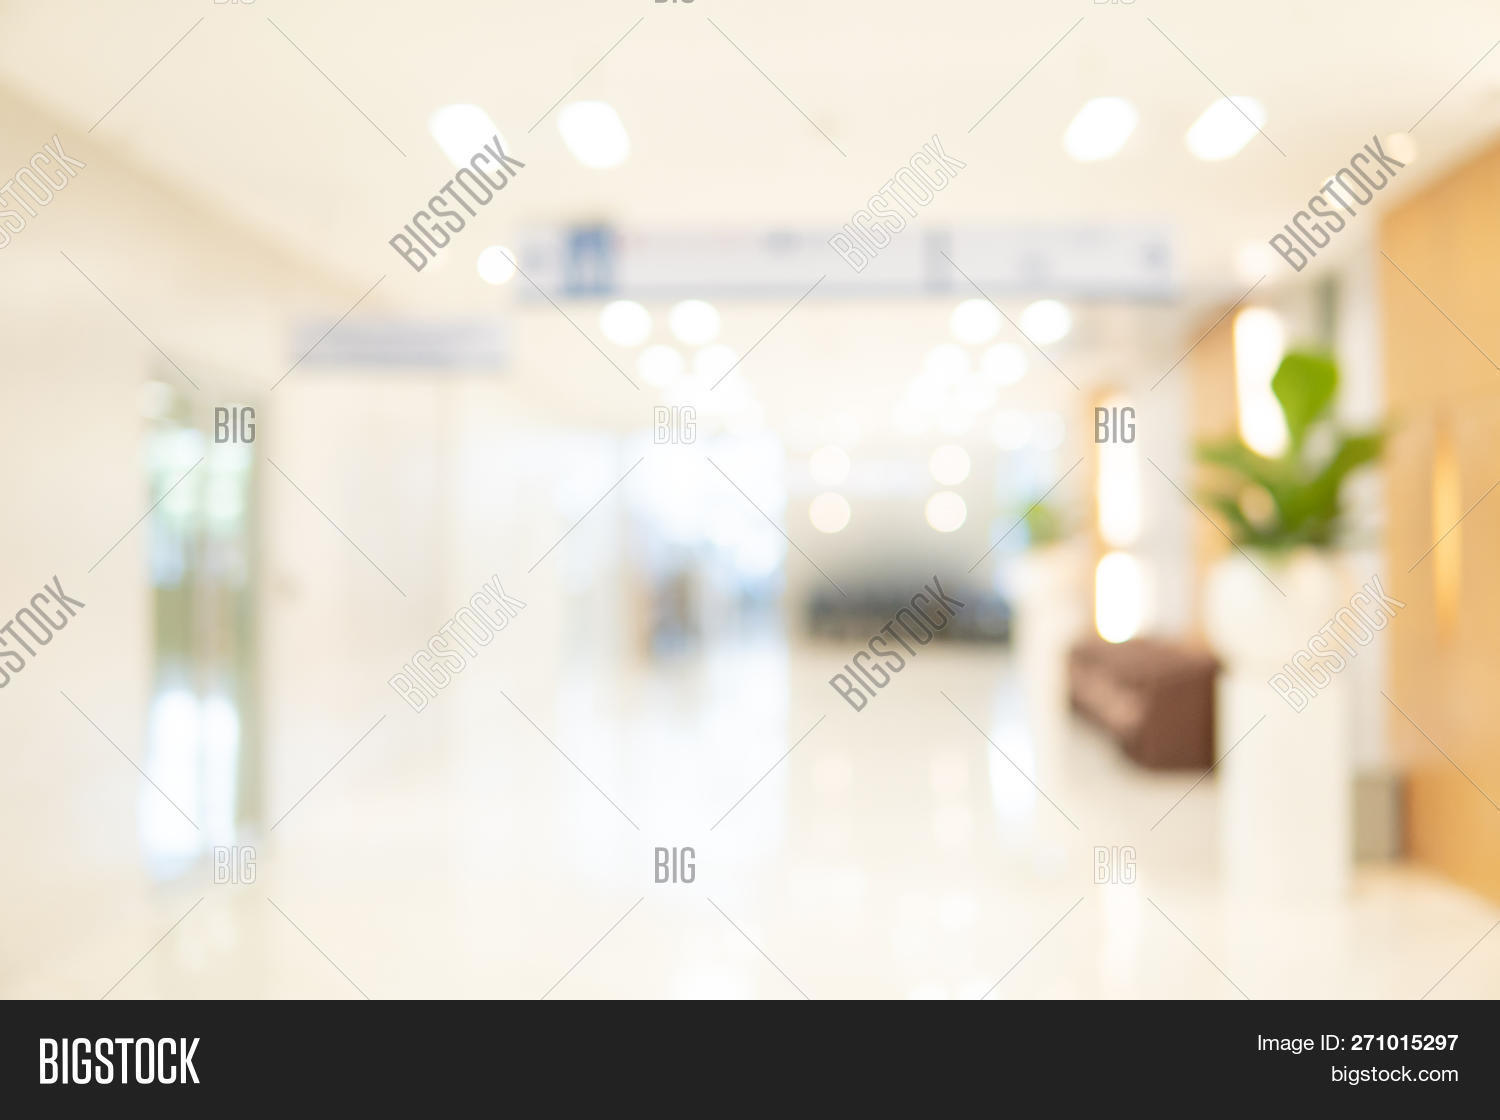 abstract,architecture,area,backdrop,background,blank,blur,blurred,blurry,bokeh,bright,building,business,care,center,clean,clinic,copy,corridor,defocused,doctor,emergency,hall,hallway,health,healthcare,hospital,indoor,inside,interior,light,luxury,mall,medical,modern,nurse,office,patient,perspective,public,reflection,retail,room,shopping,space,store,waiting,wall,way,white